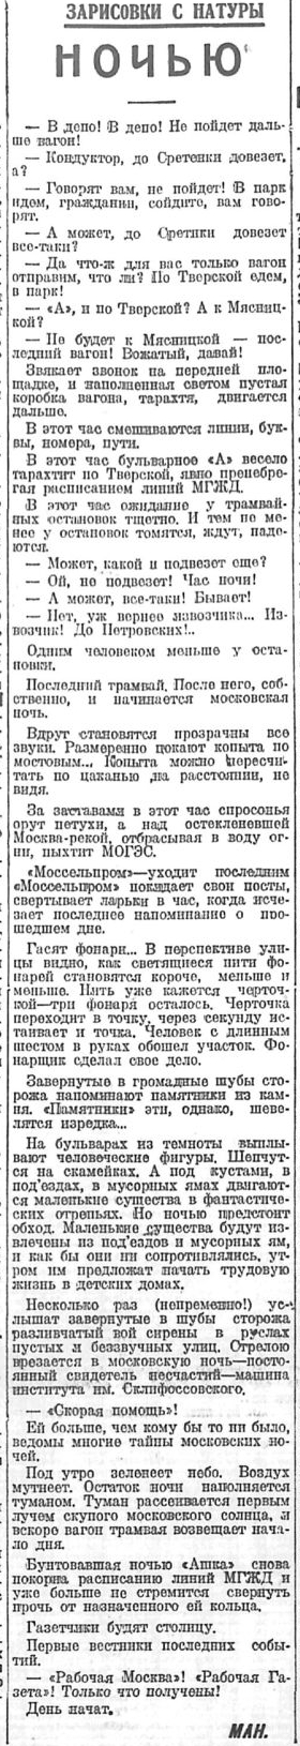 9. ВМ-16.05.27